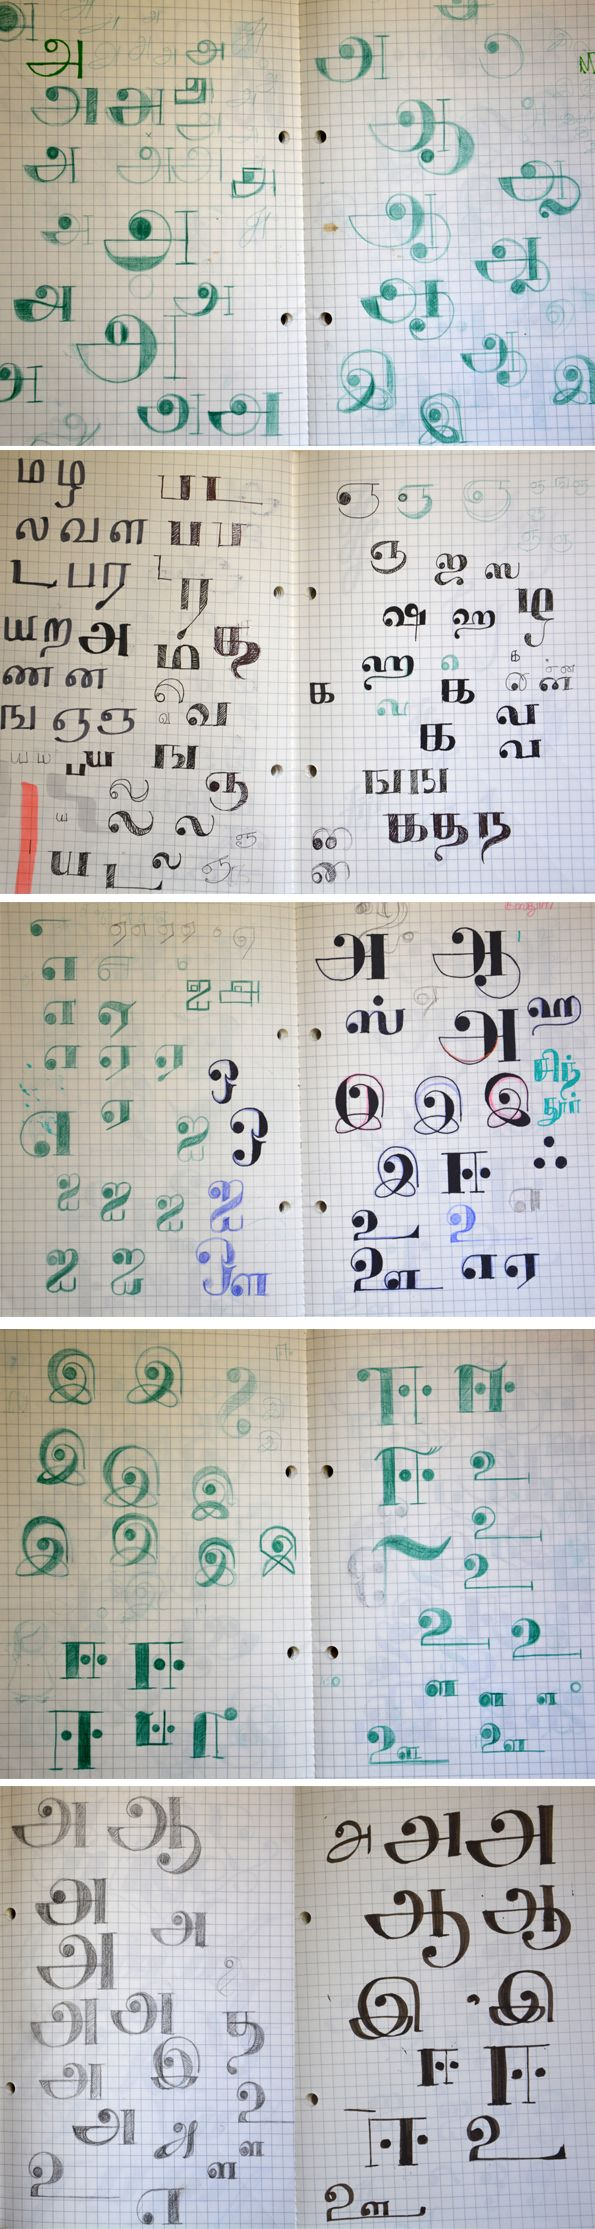 Tamil lettering - Work in progress on Typography Served